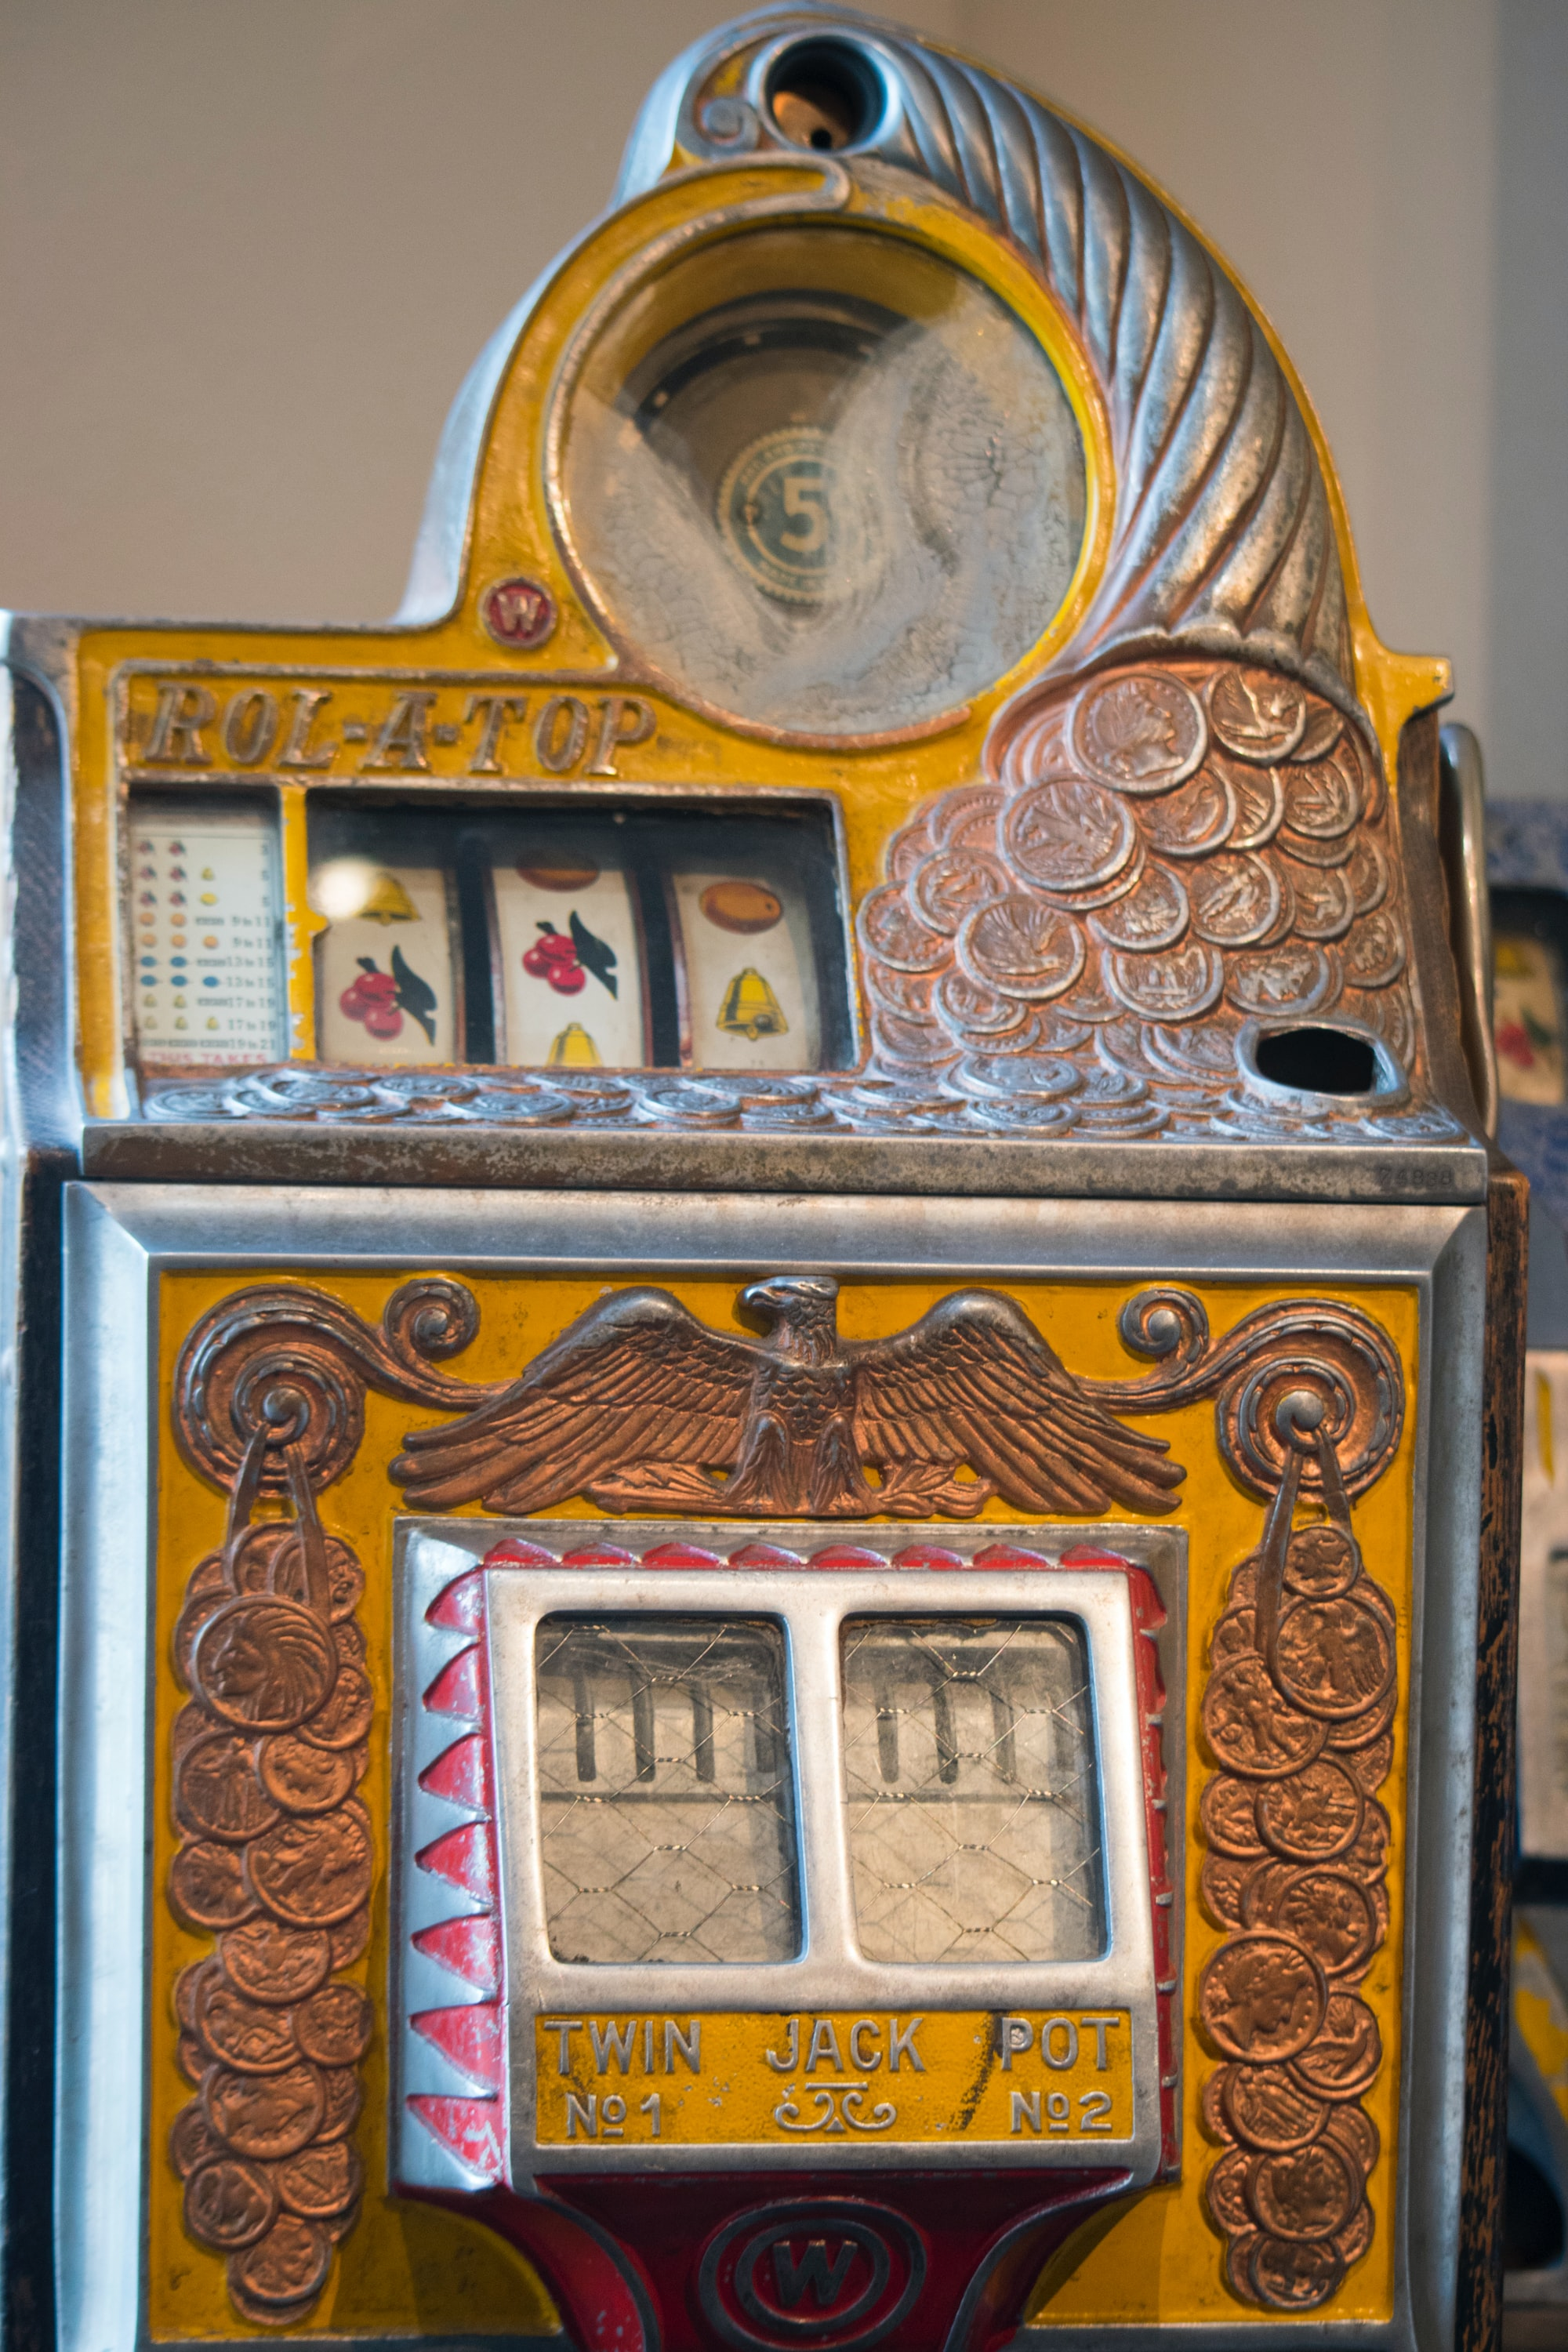 An old slot machine, classic, vintage